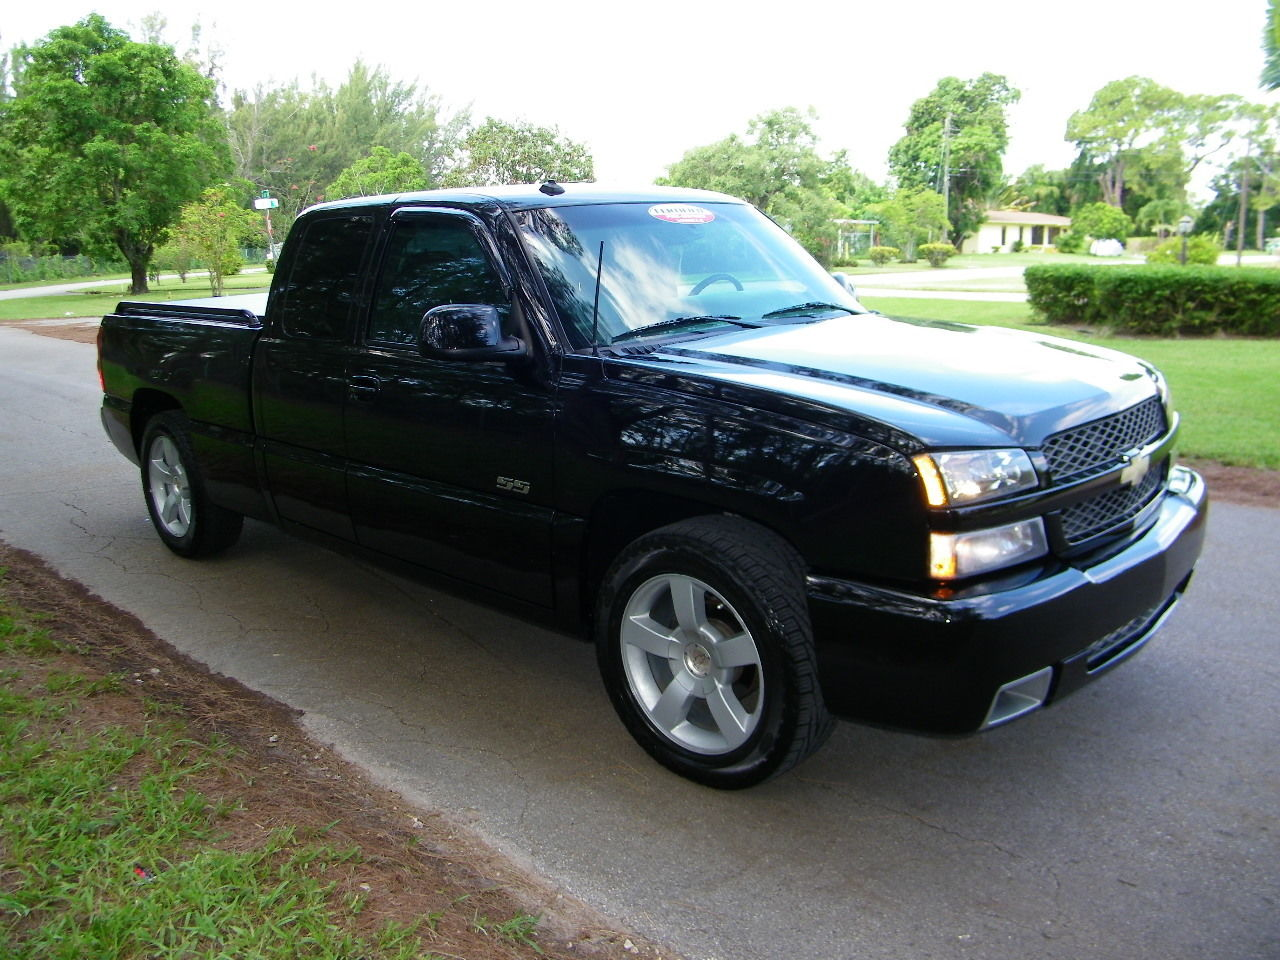 03 chevy silverado ss 3 000 trucks for sale. Black Bedroom Furniture Sets. Home Design Ideas